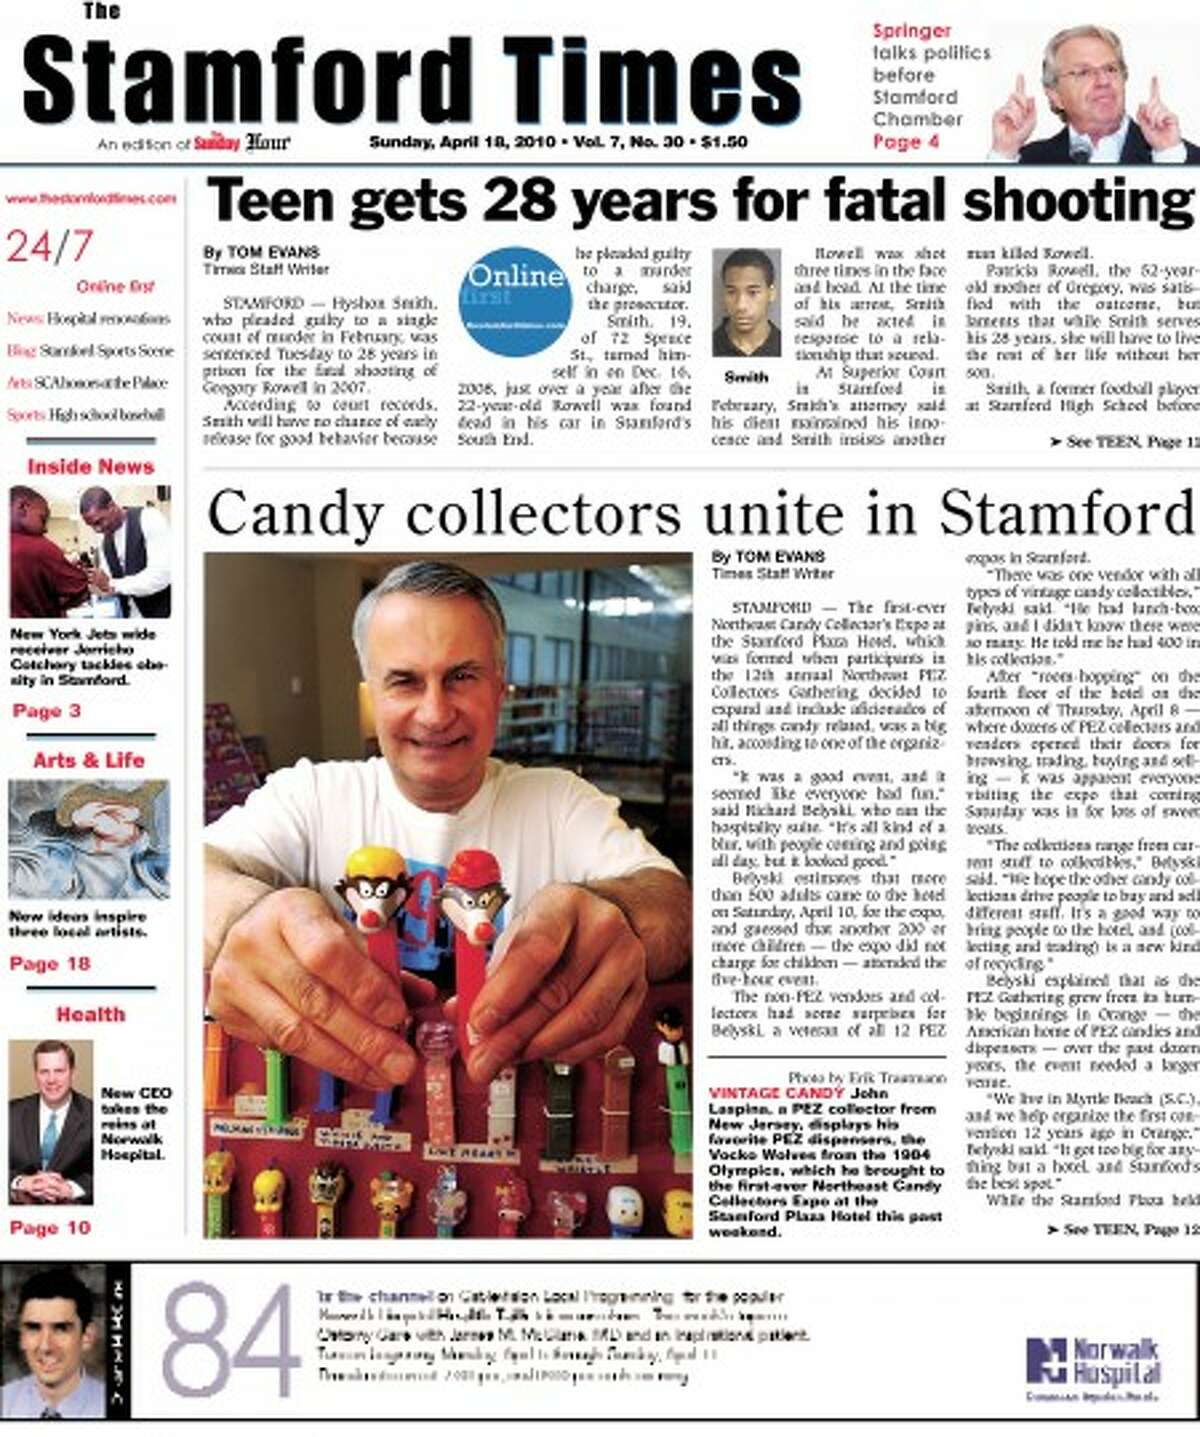 Introducing the new look of The Stamford Times